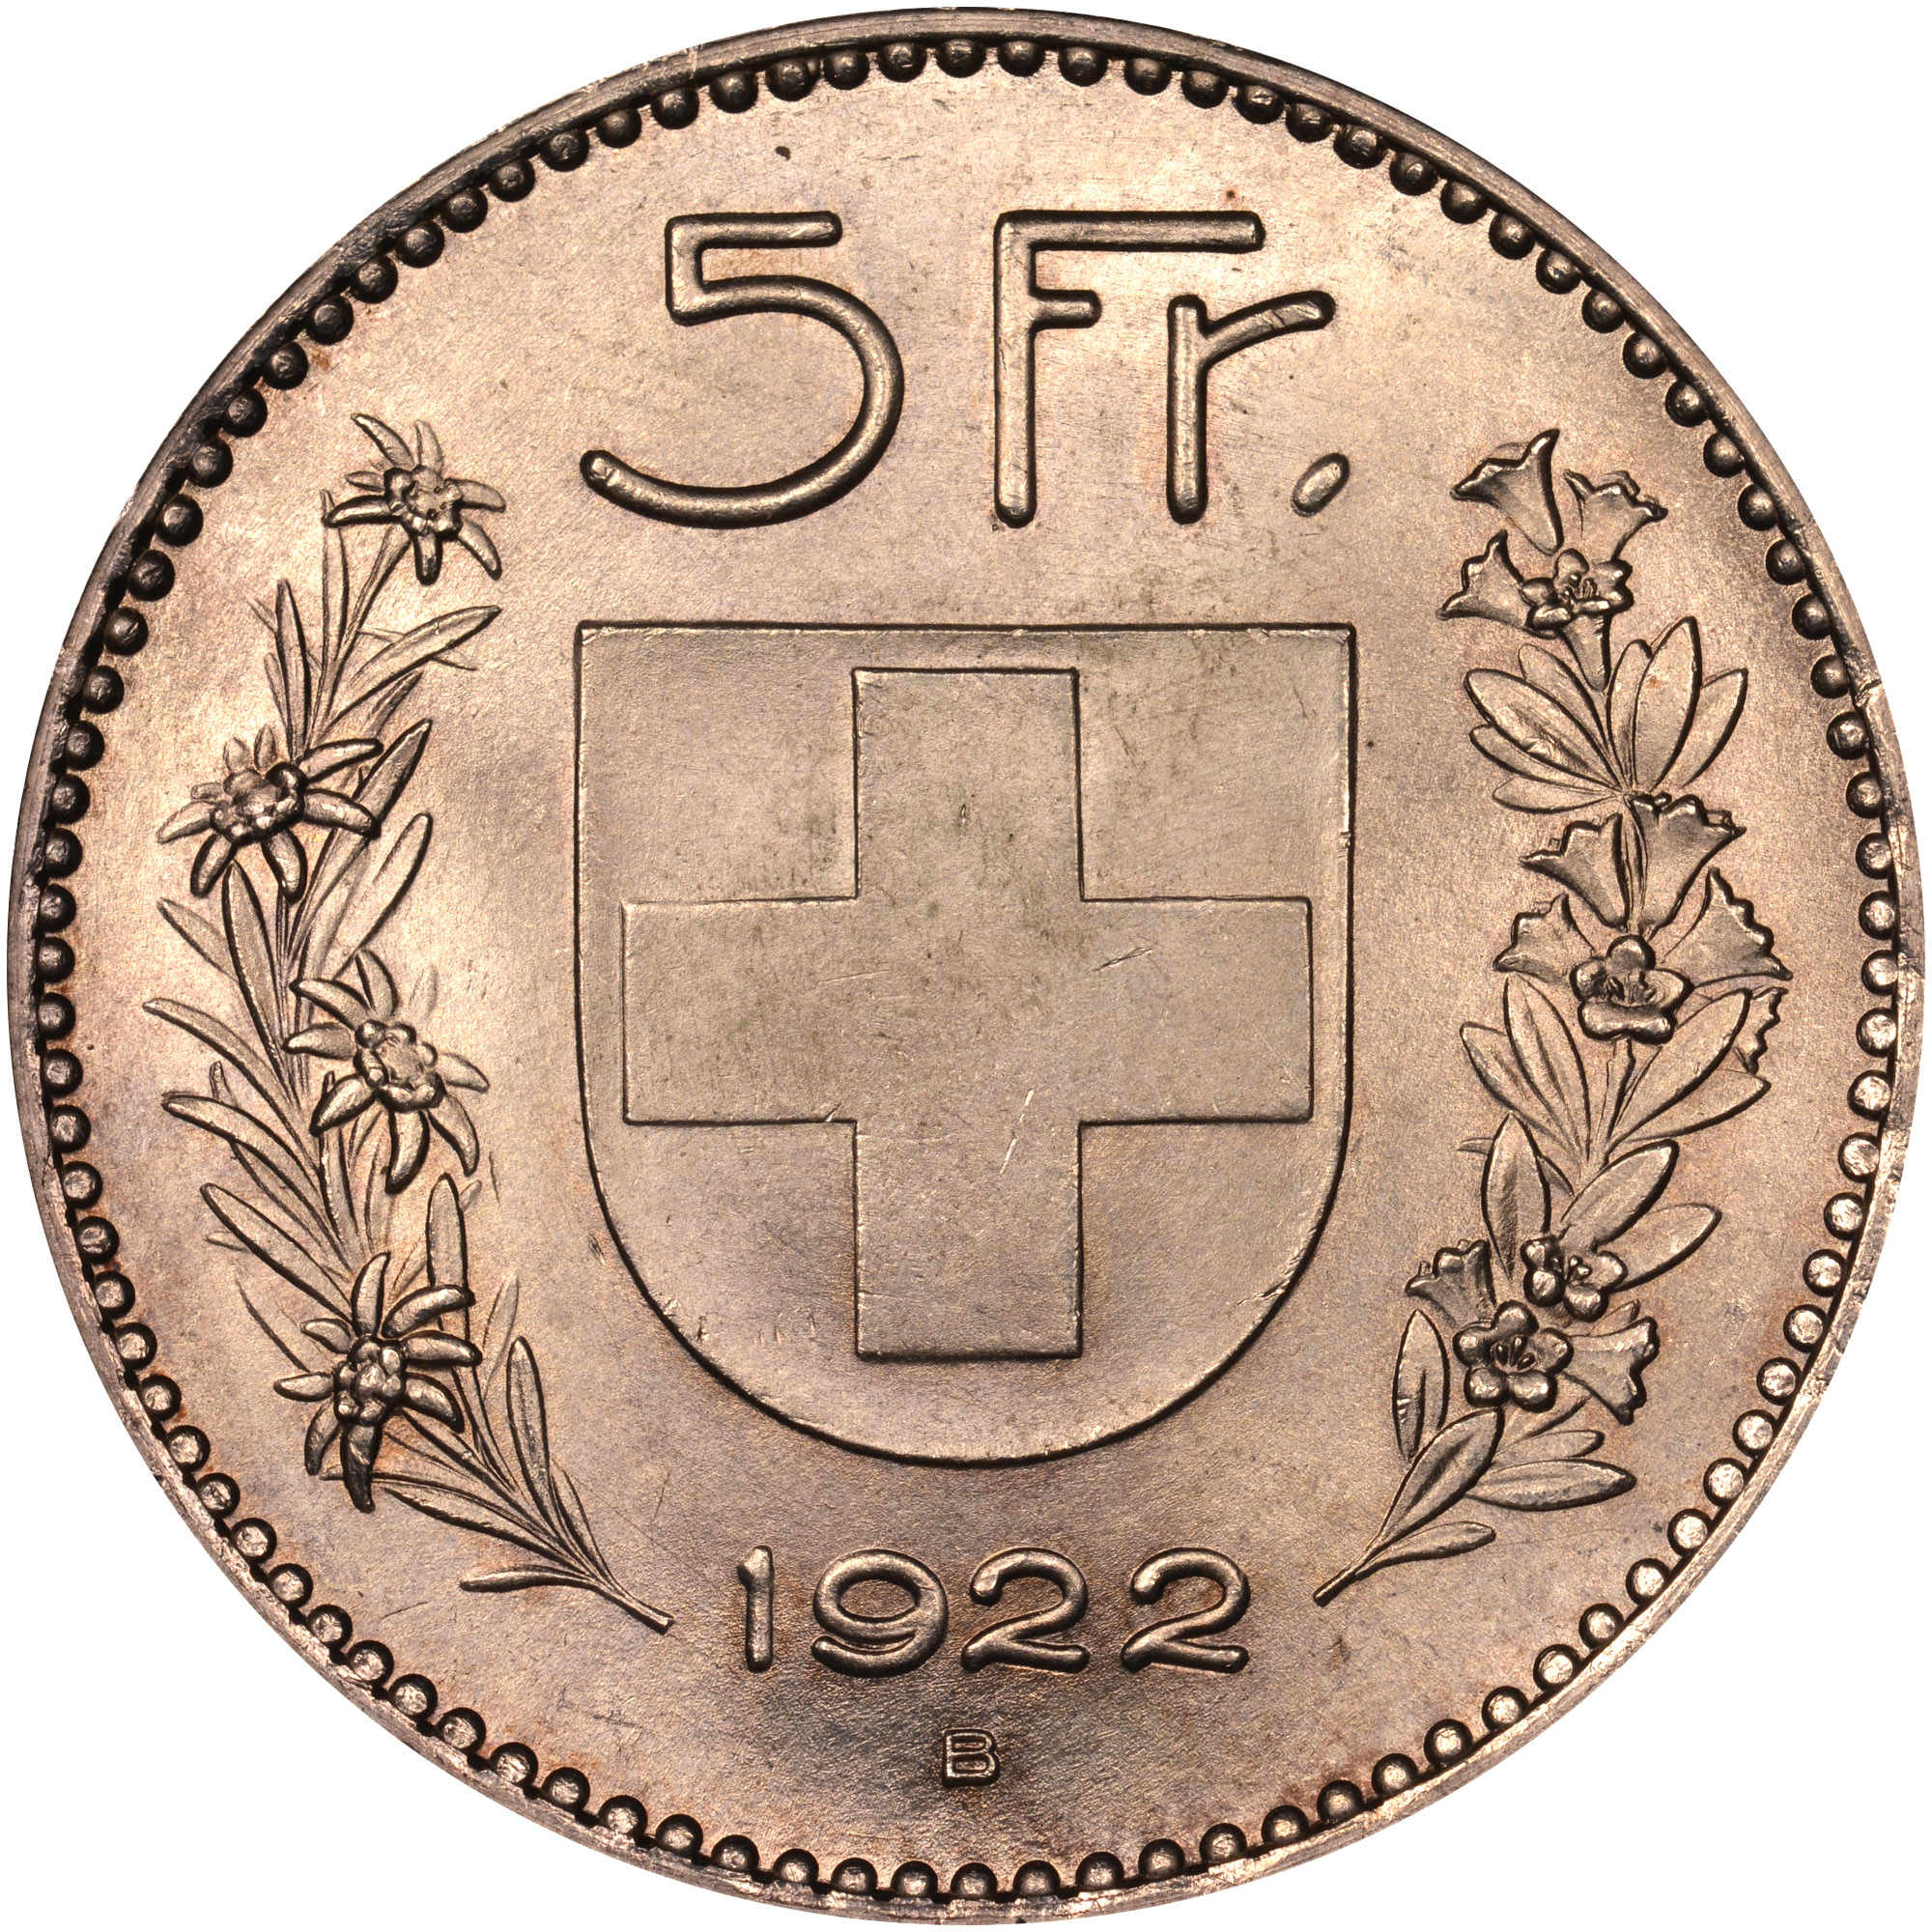 1922-1923 SWITZERLAND 5 Francs reverse